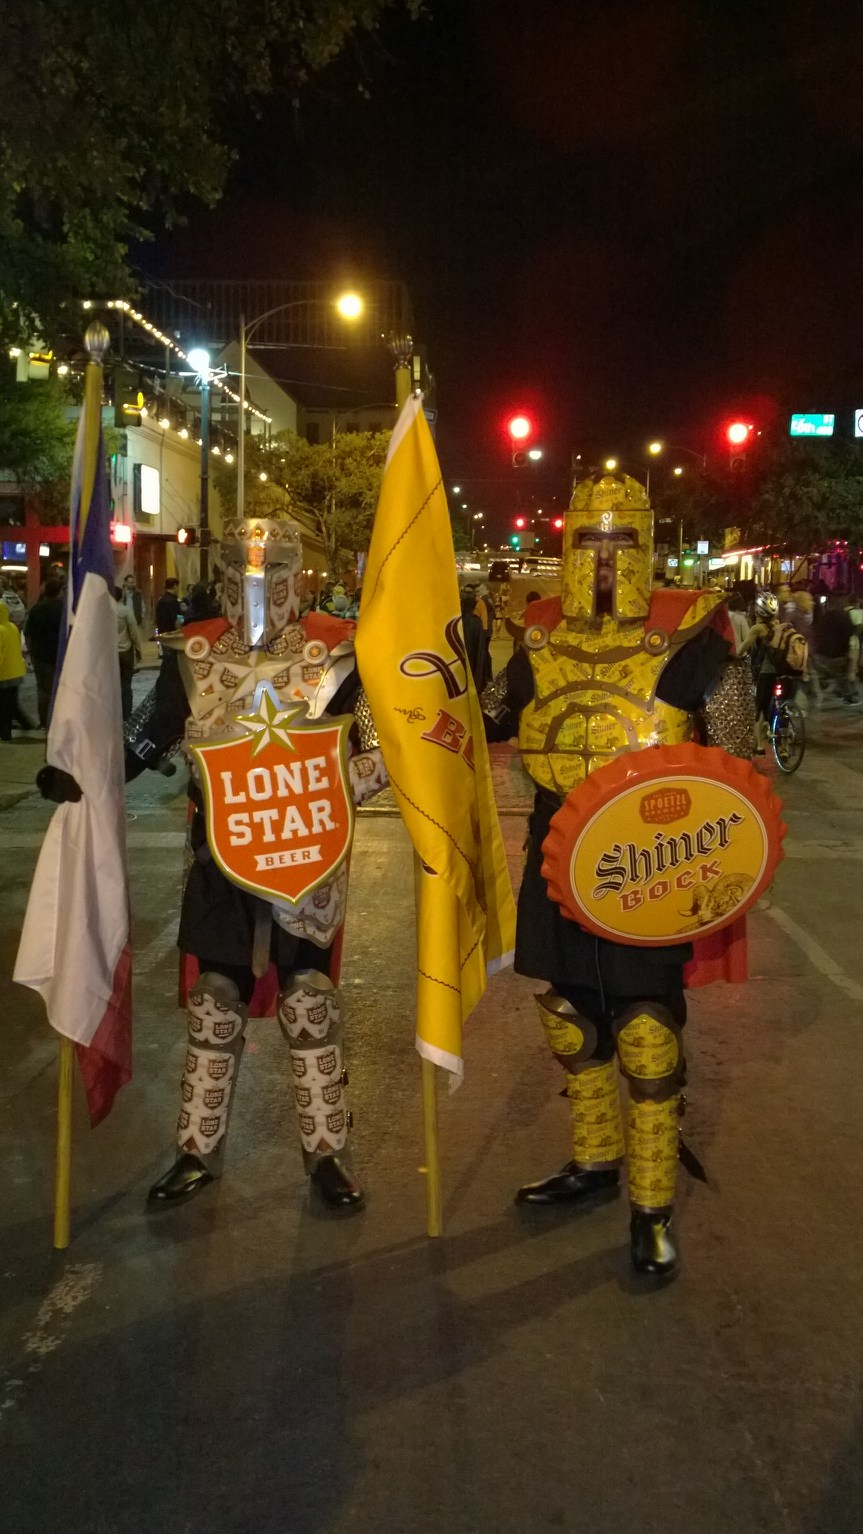 Behold The Lone Star Knight & Knight in Shiner Armor